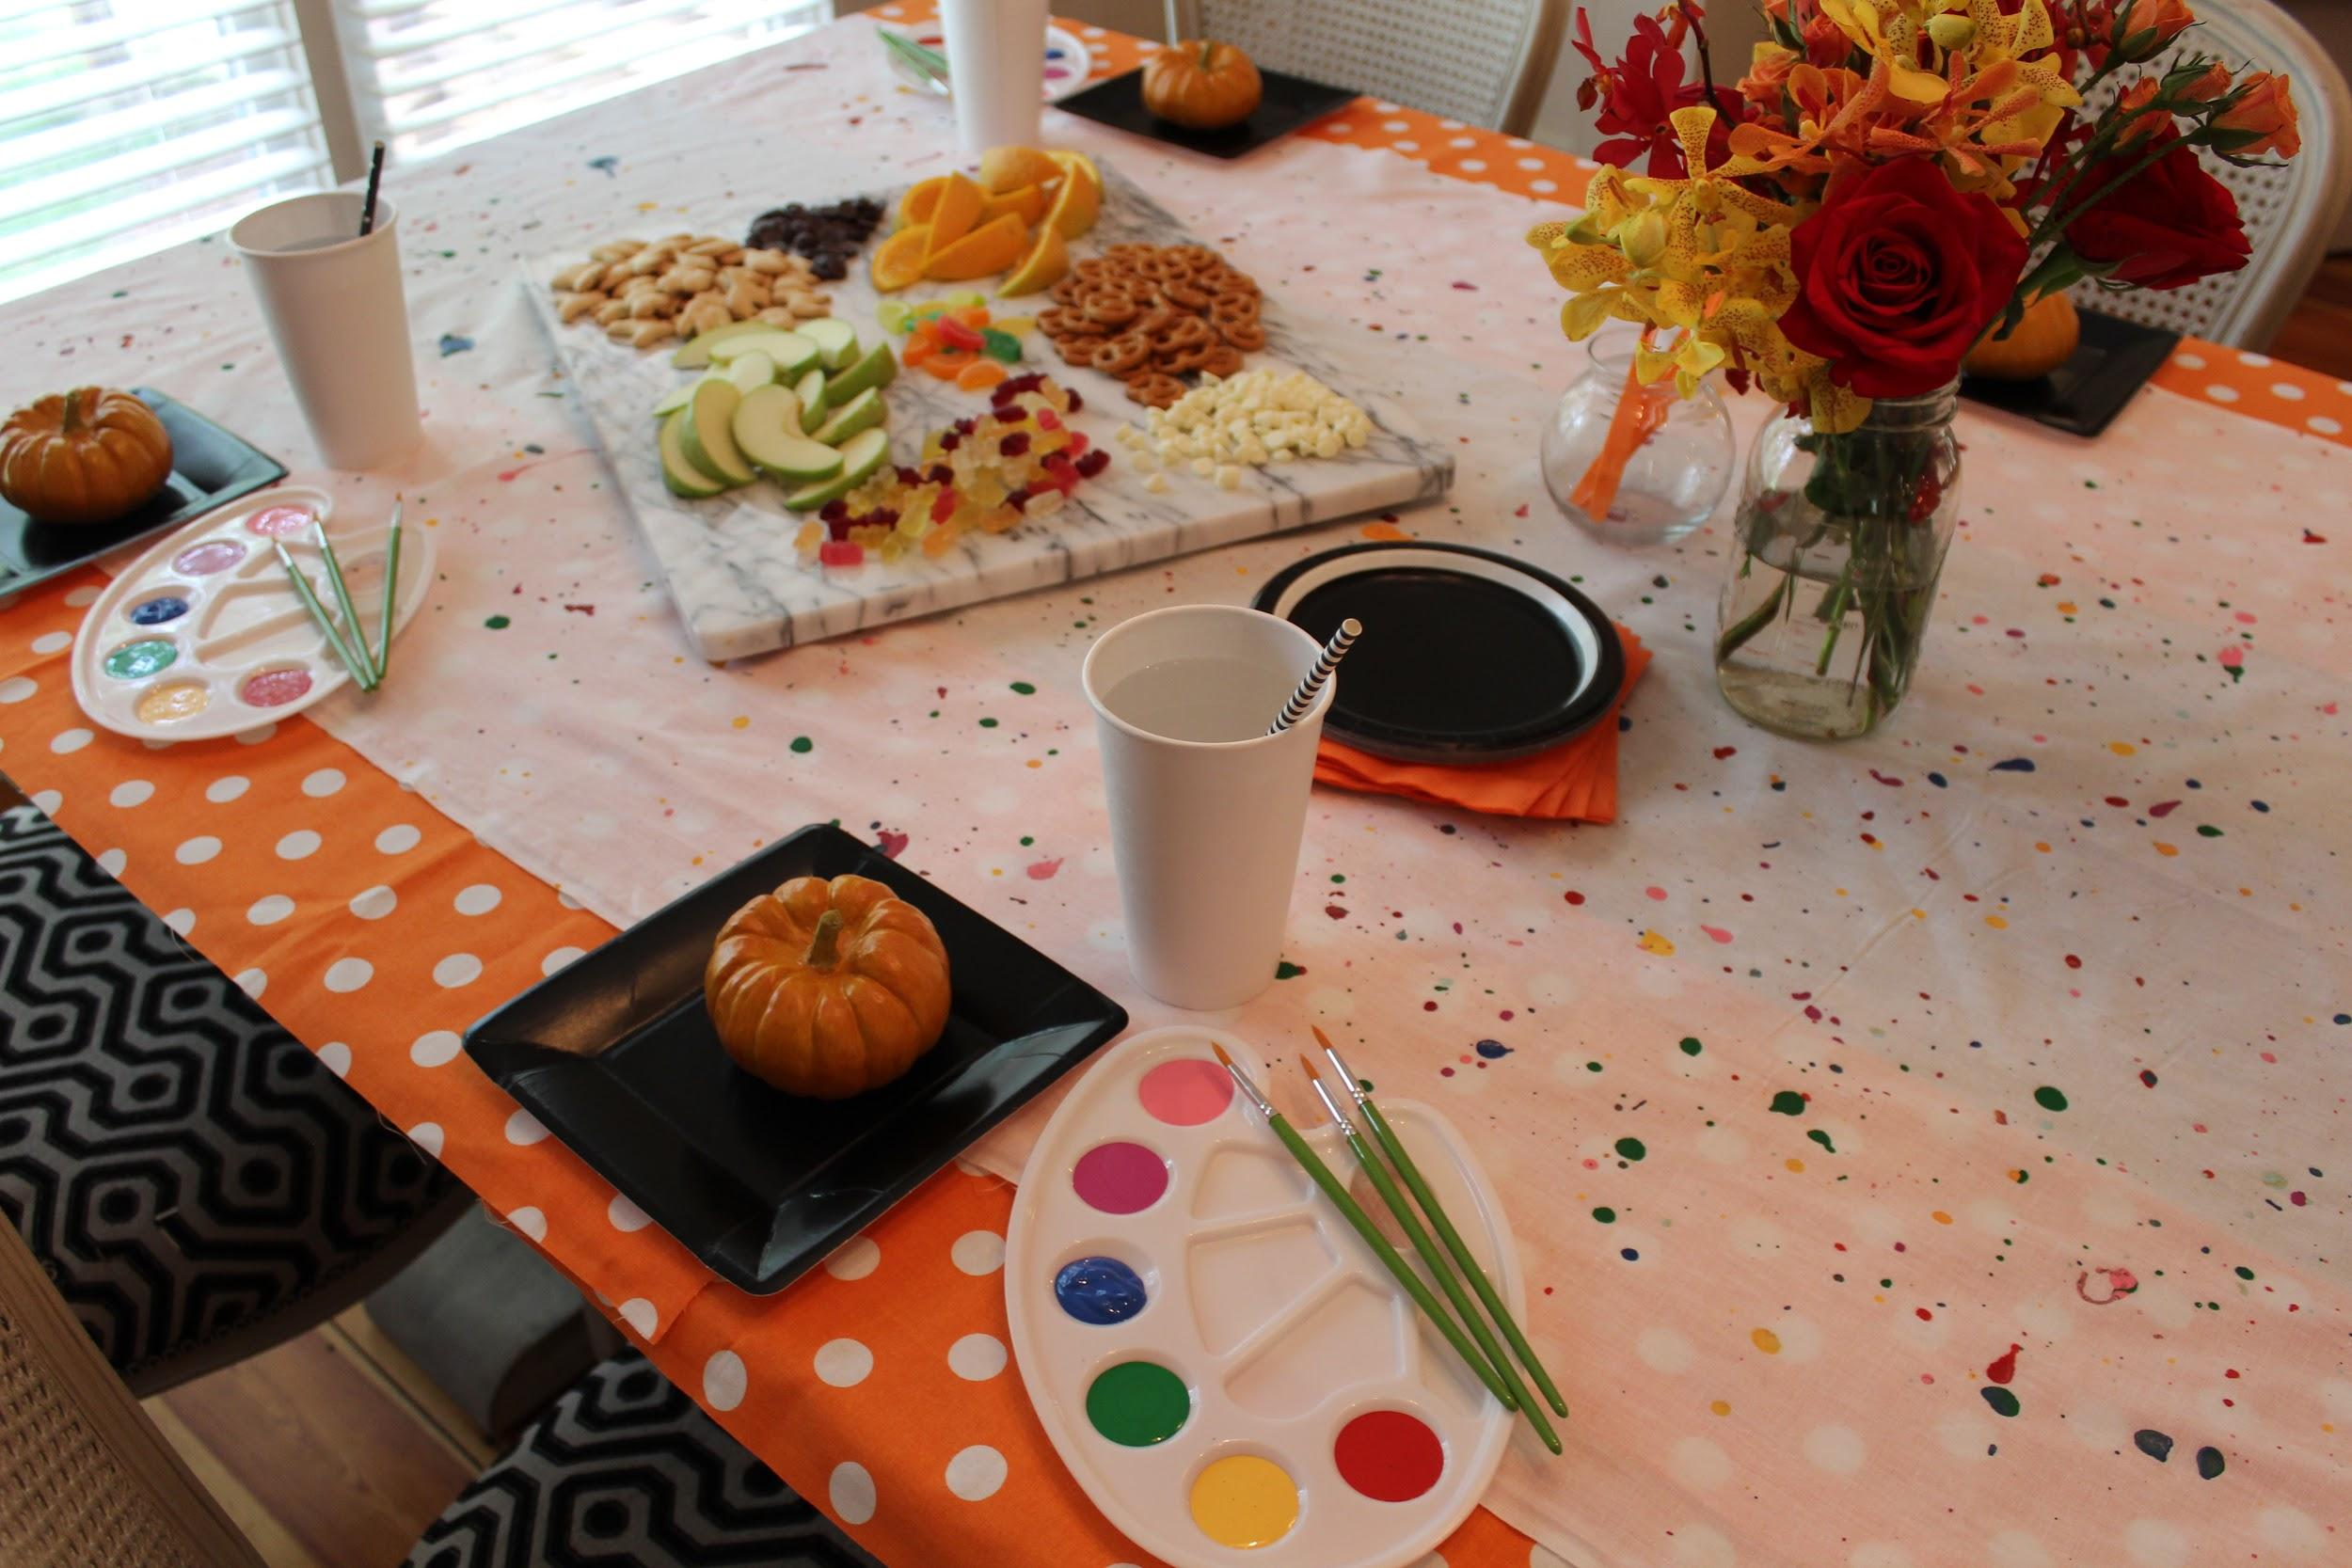 autumn party food and flowers on a table with paint